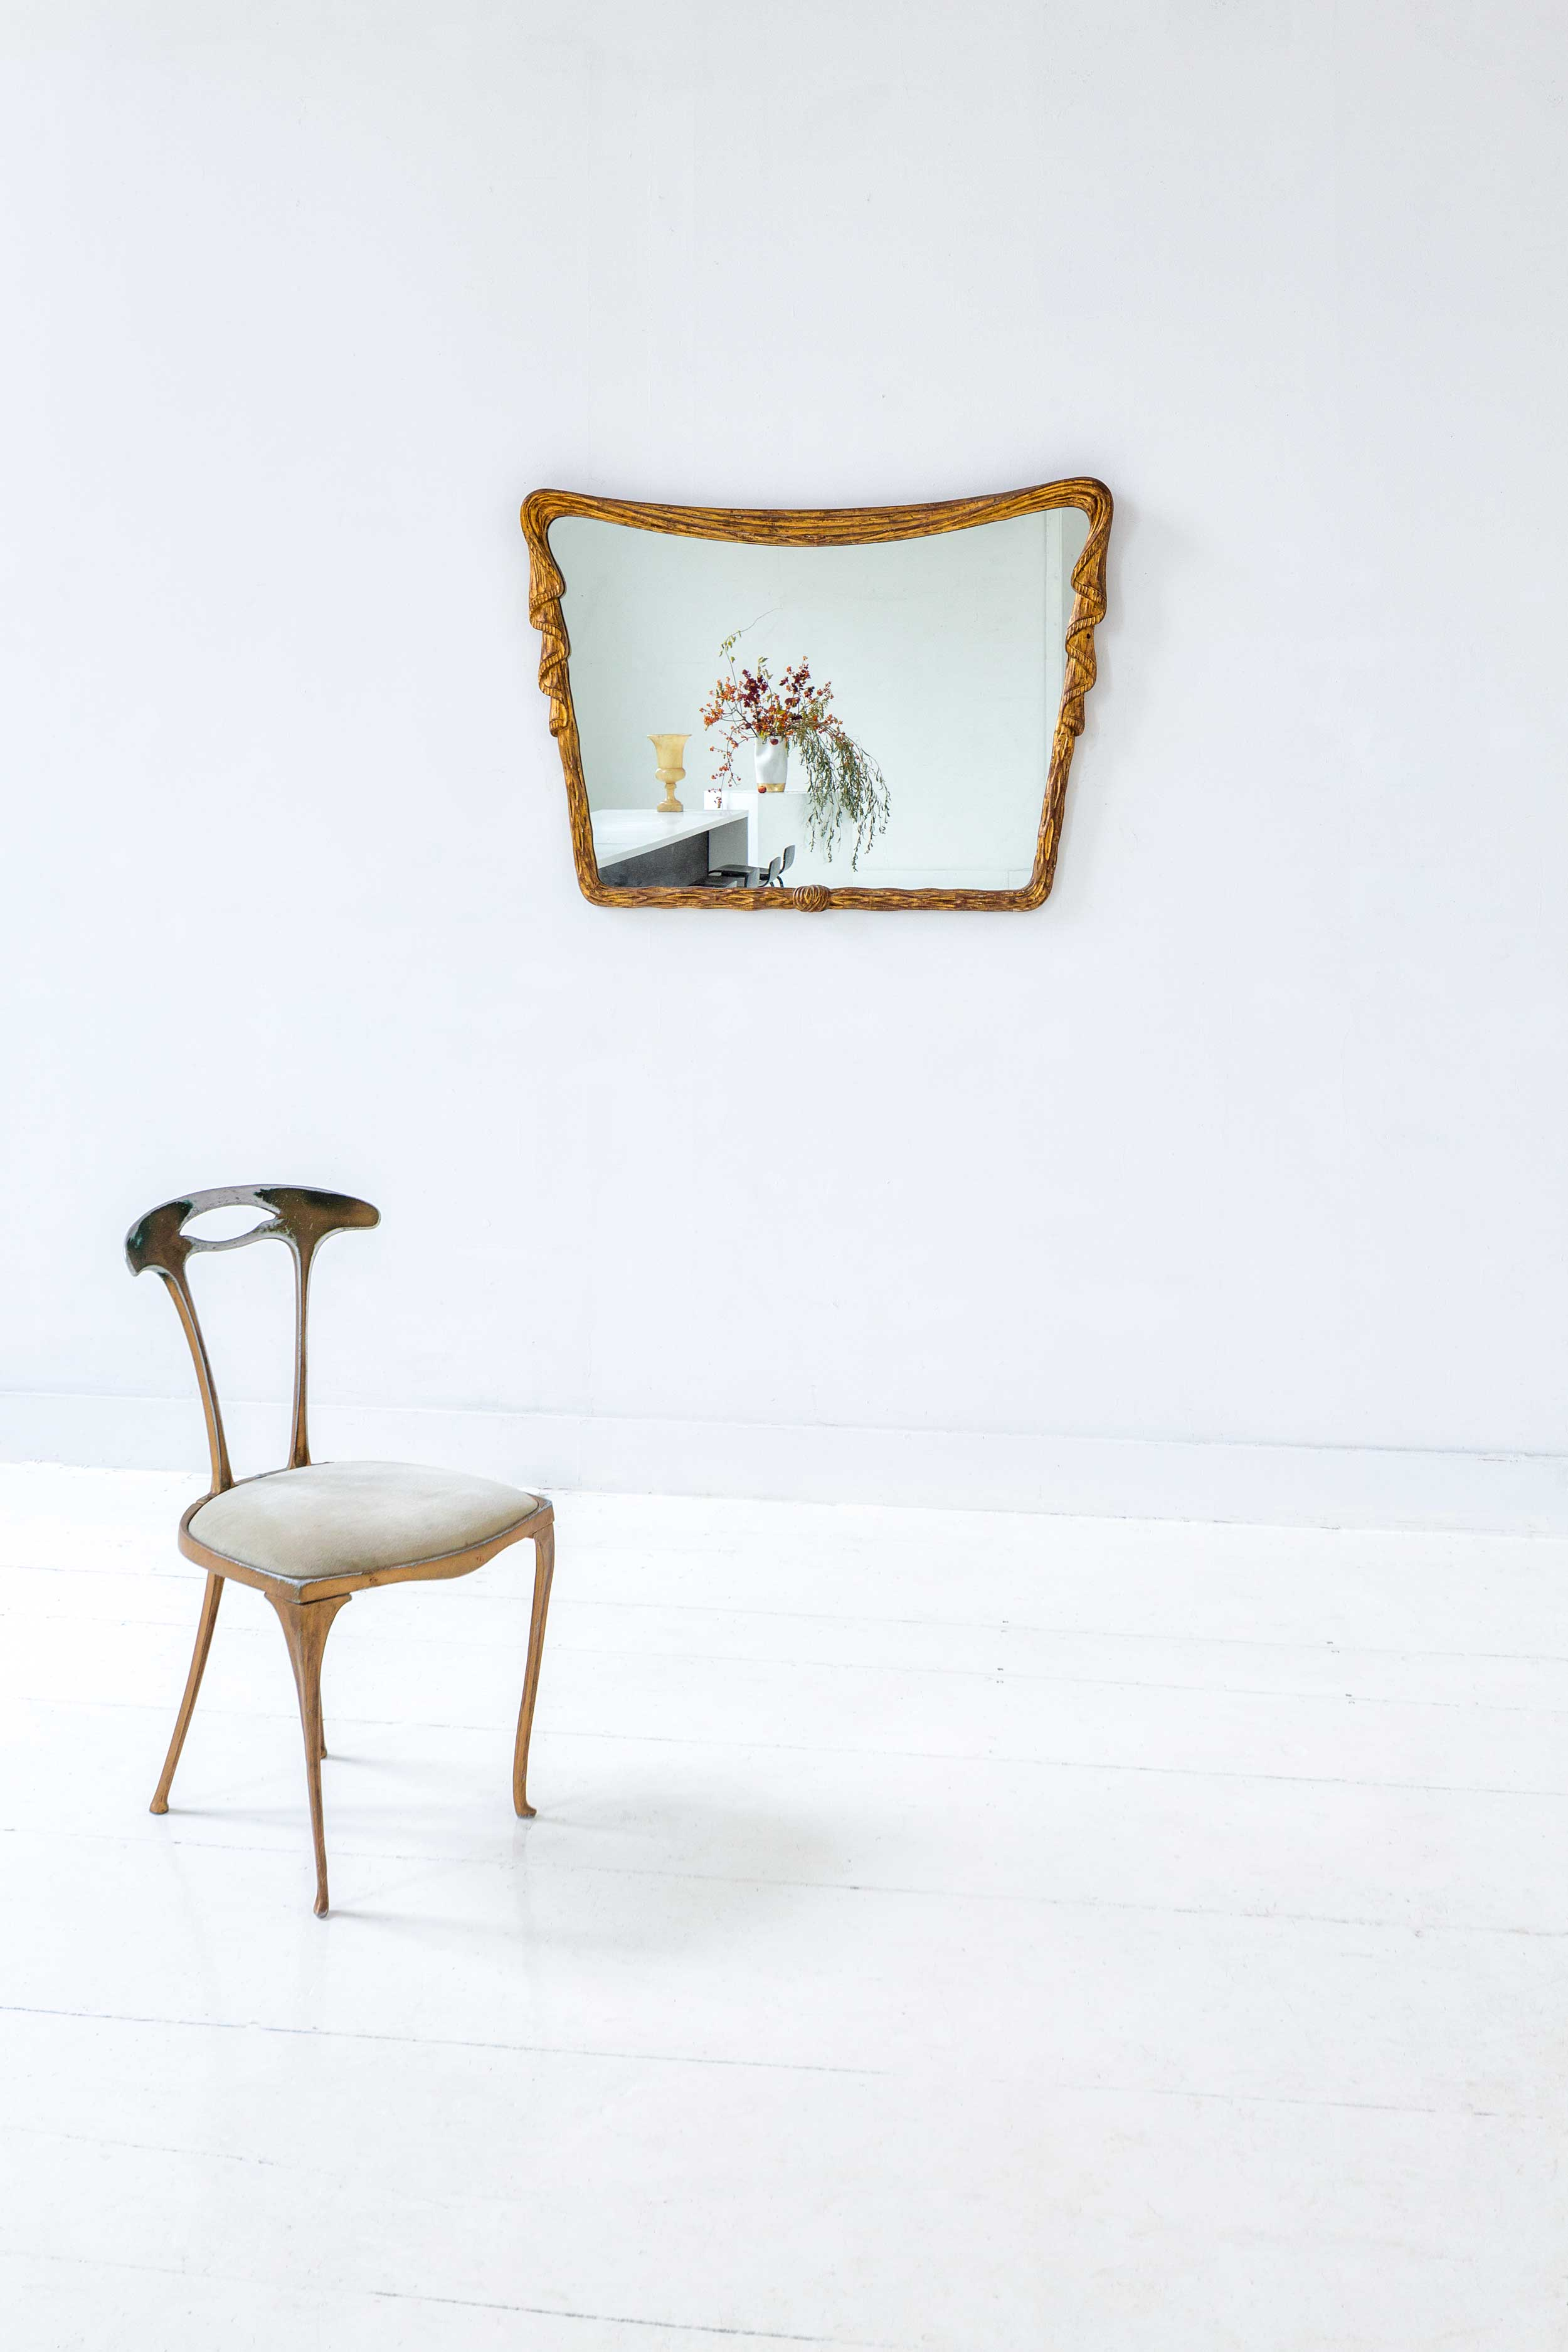 In the common room, an antique mirror and chair share the space with modern art.